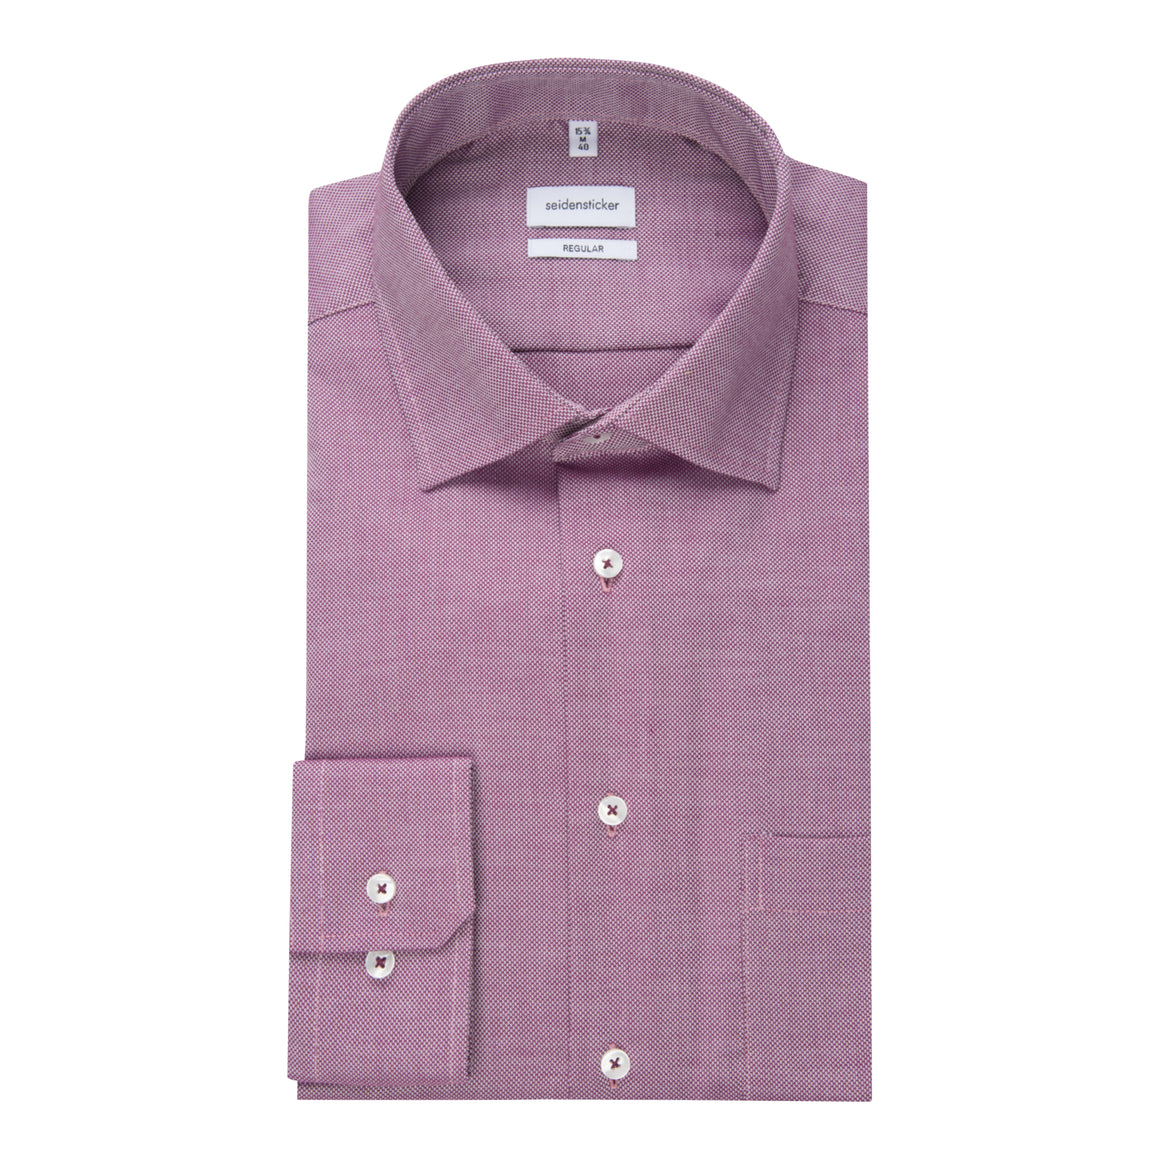 Plain Surface Structure Shirt for Men in Mulberry